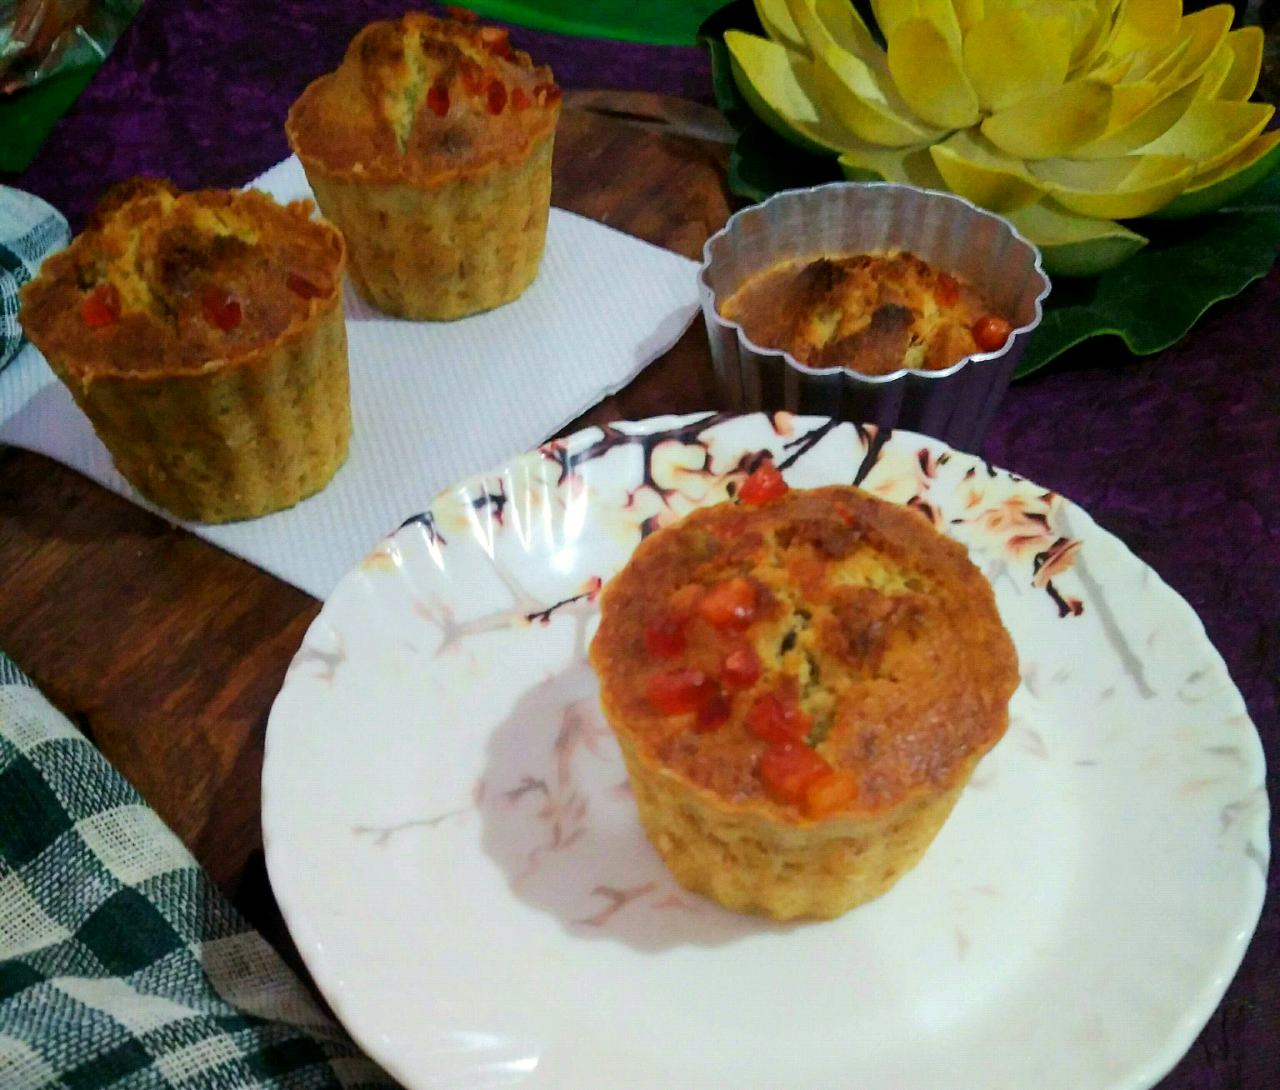 Banana Oats Muffin #oldrecipes#wildcard#topcontributor#winchance#luck#surprises​